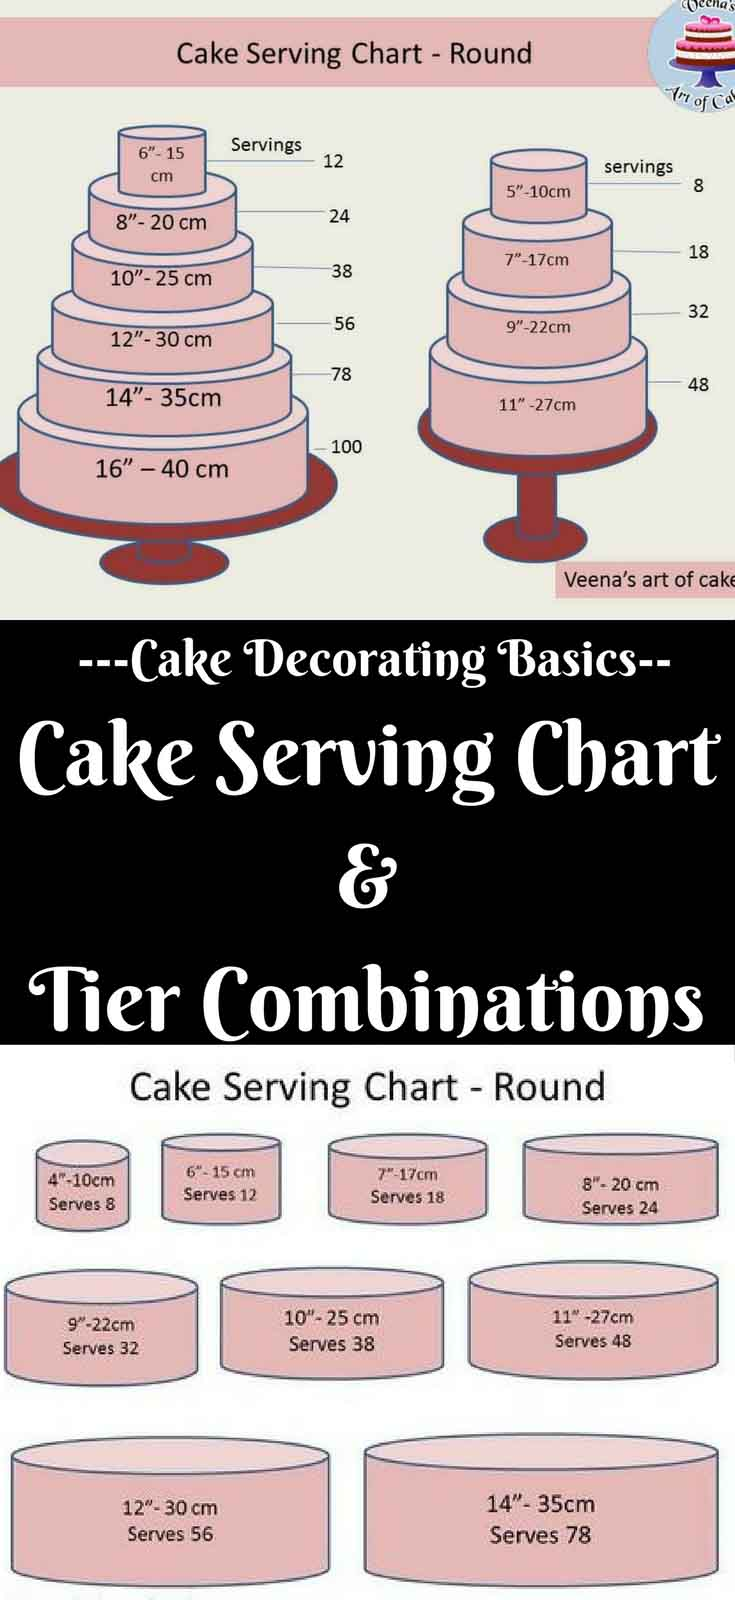 10 In Cm Cake Serving Chart Guide Popular Tier Combinations Veena Azmanov